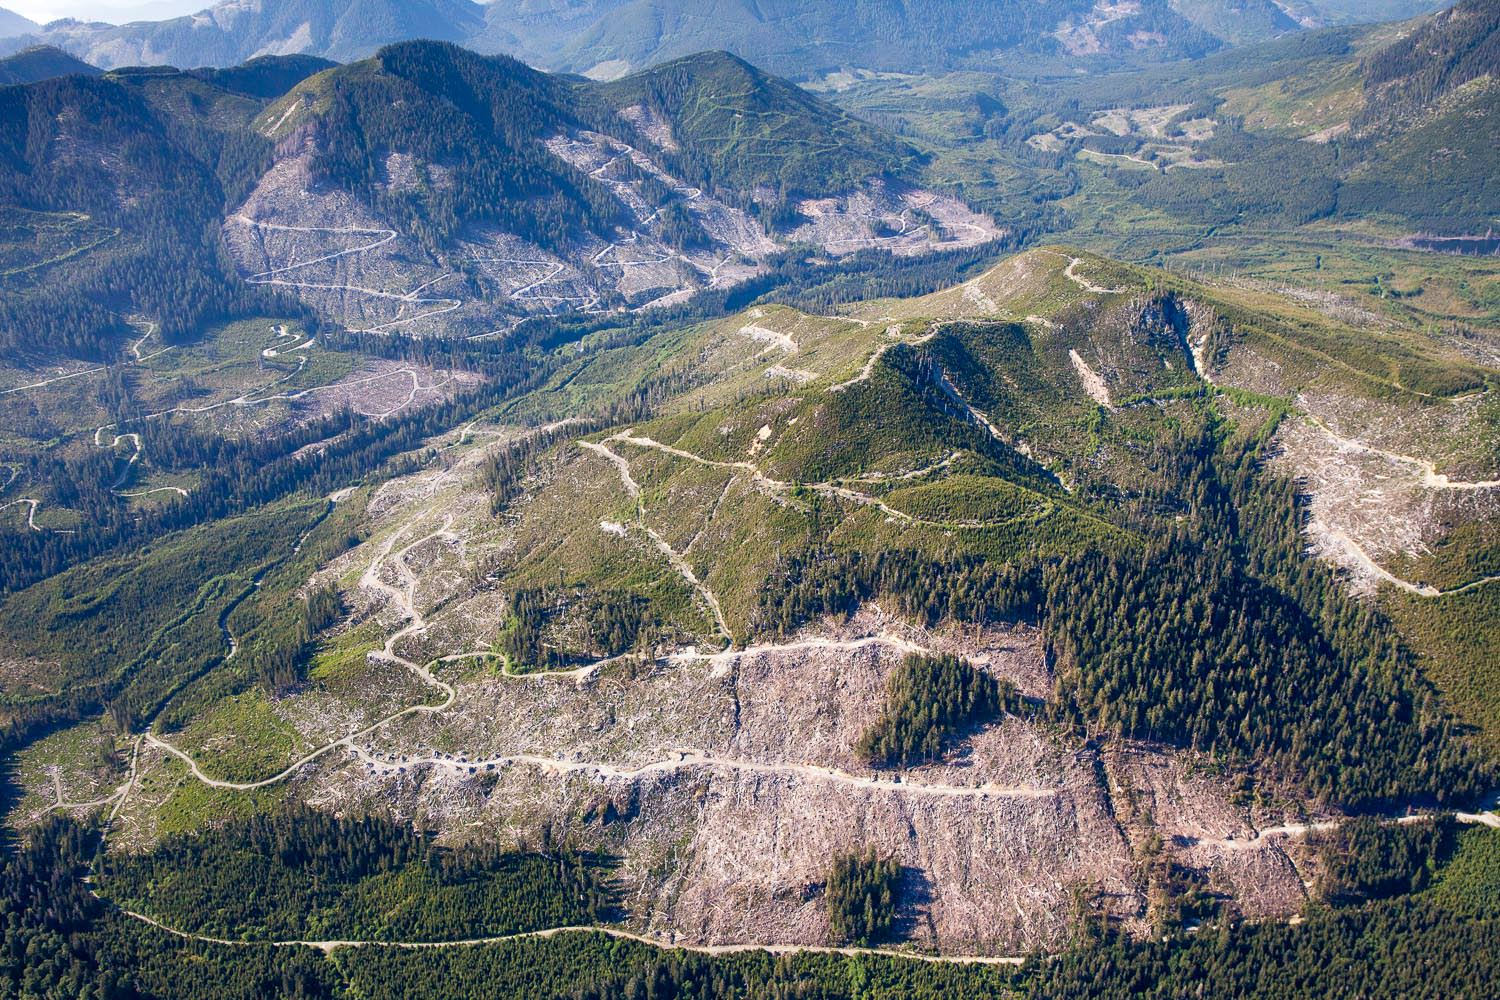 The impacts of industrial logging on the old-growth forests of the Klanawa Valley (located between Nitinat Lake and Bamfield) have been especially devestating. Western Forest Products, TFL 44.